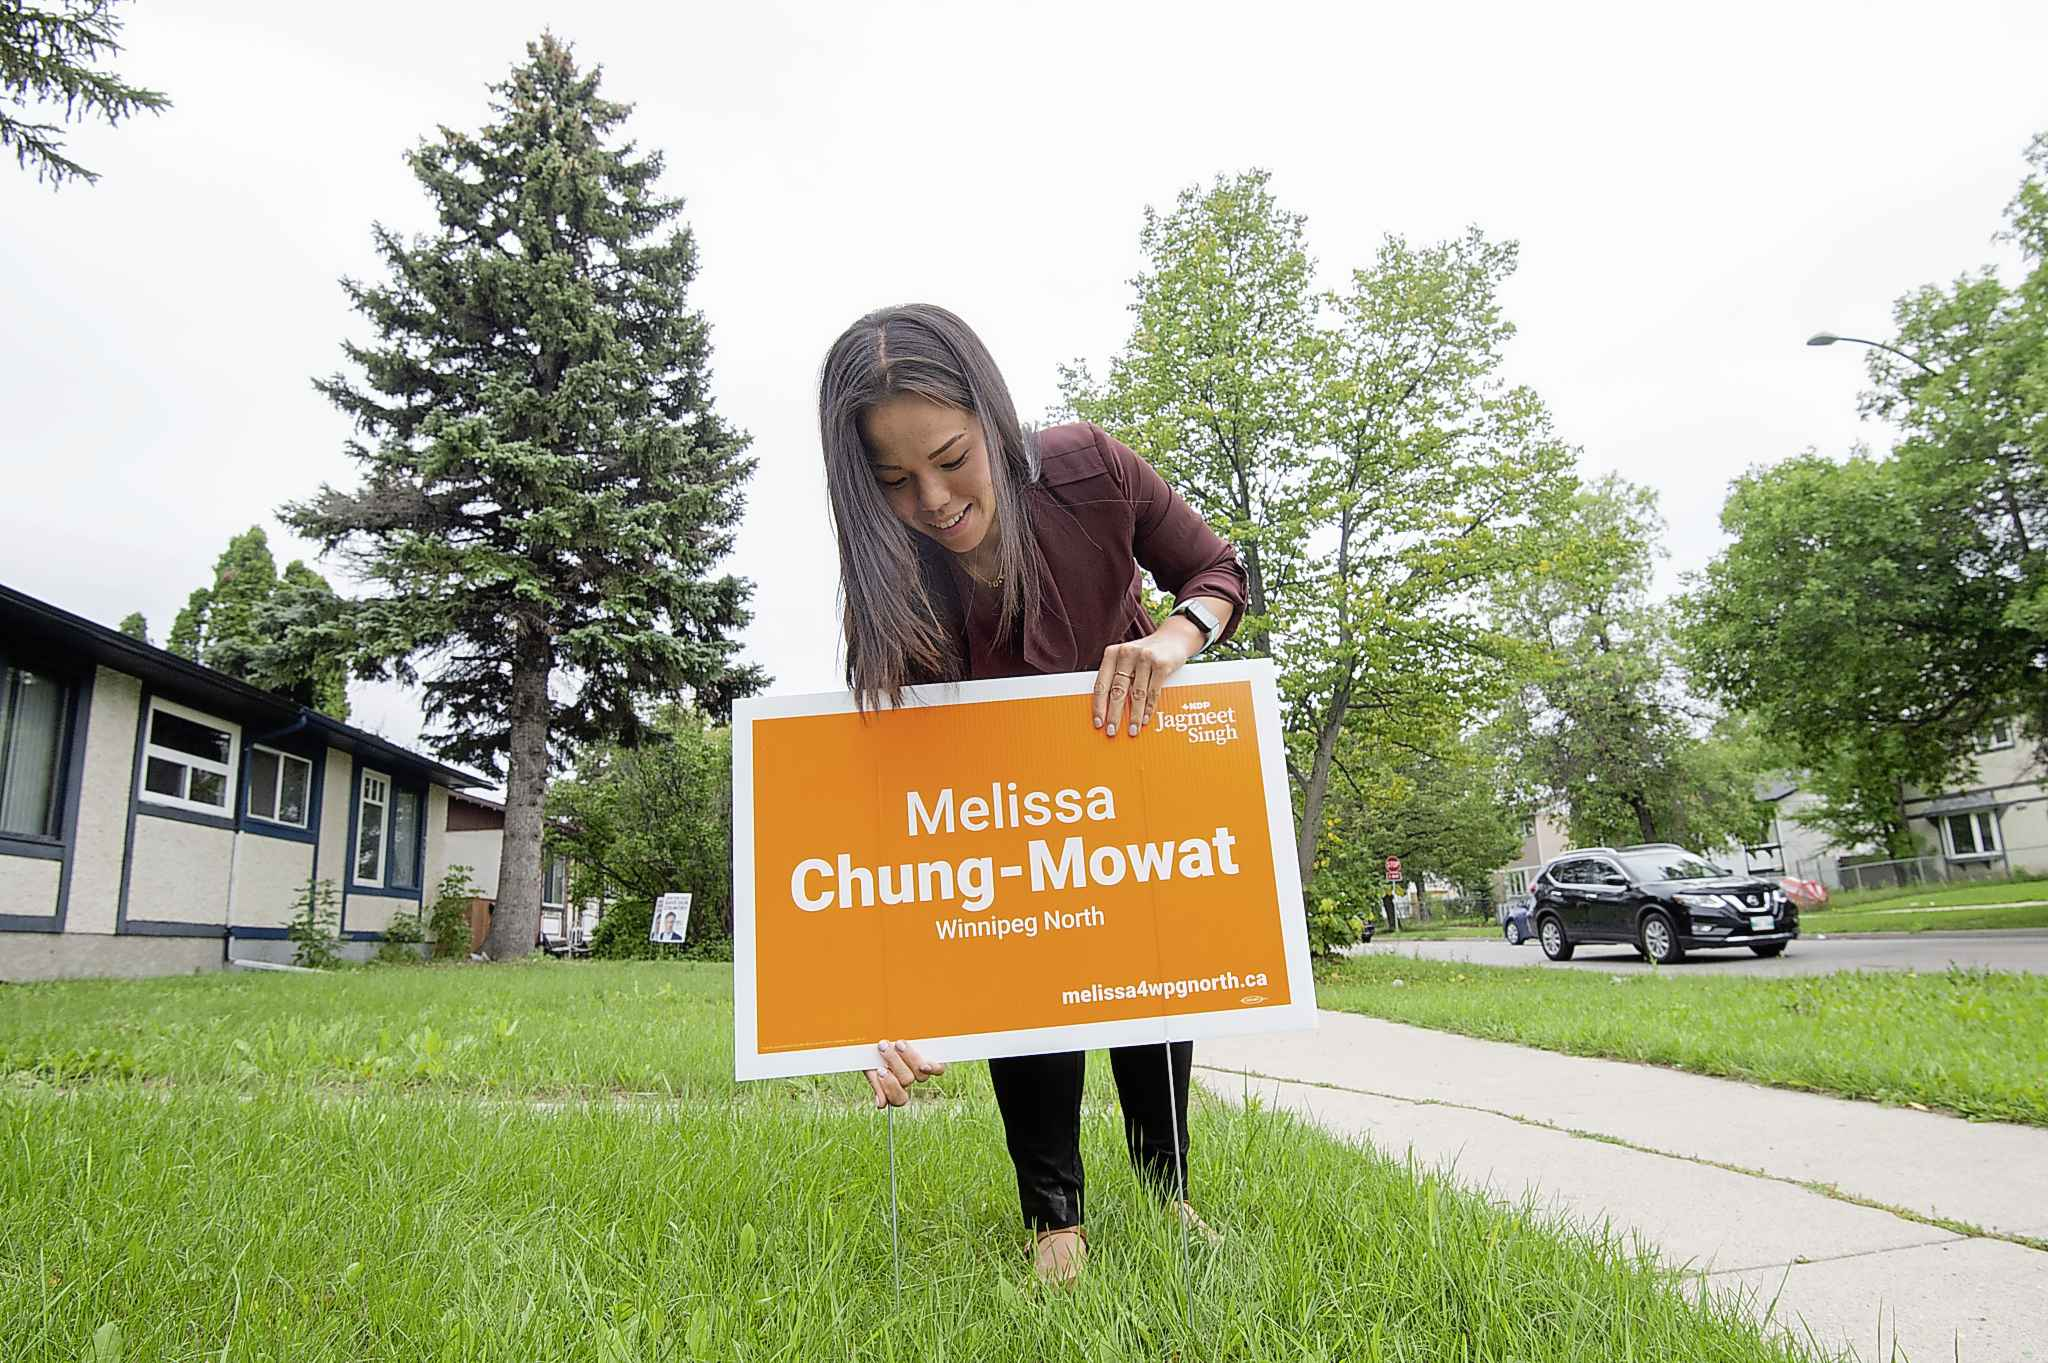 NDP MLA for Winnipeg North, Melissa Chung-Mowat puts a sign in the ground in front of a supporters home. (Mike Sudoma / Winnipeg Free Press)